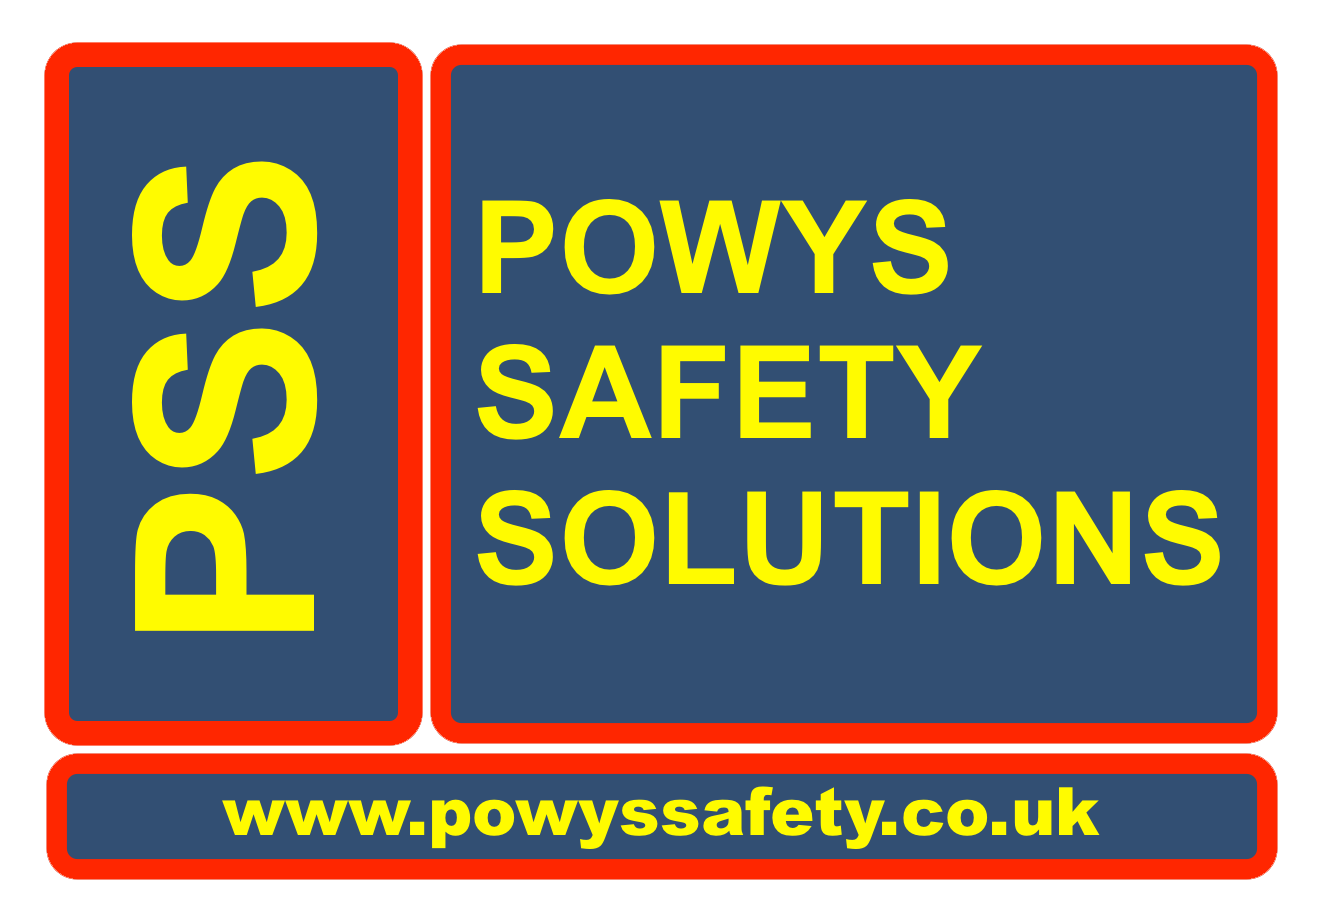 Powys Safety Solutions